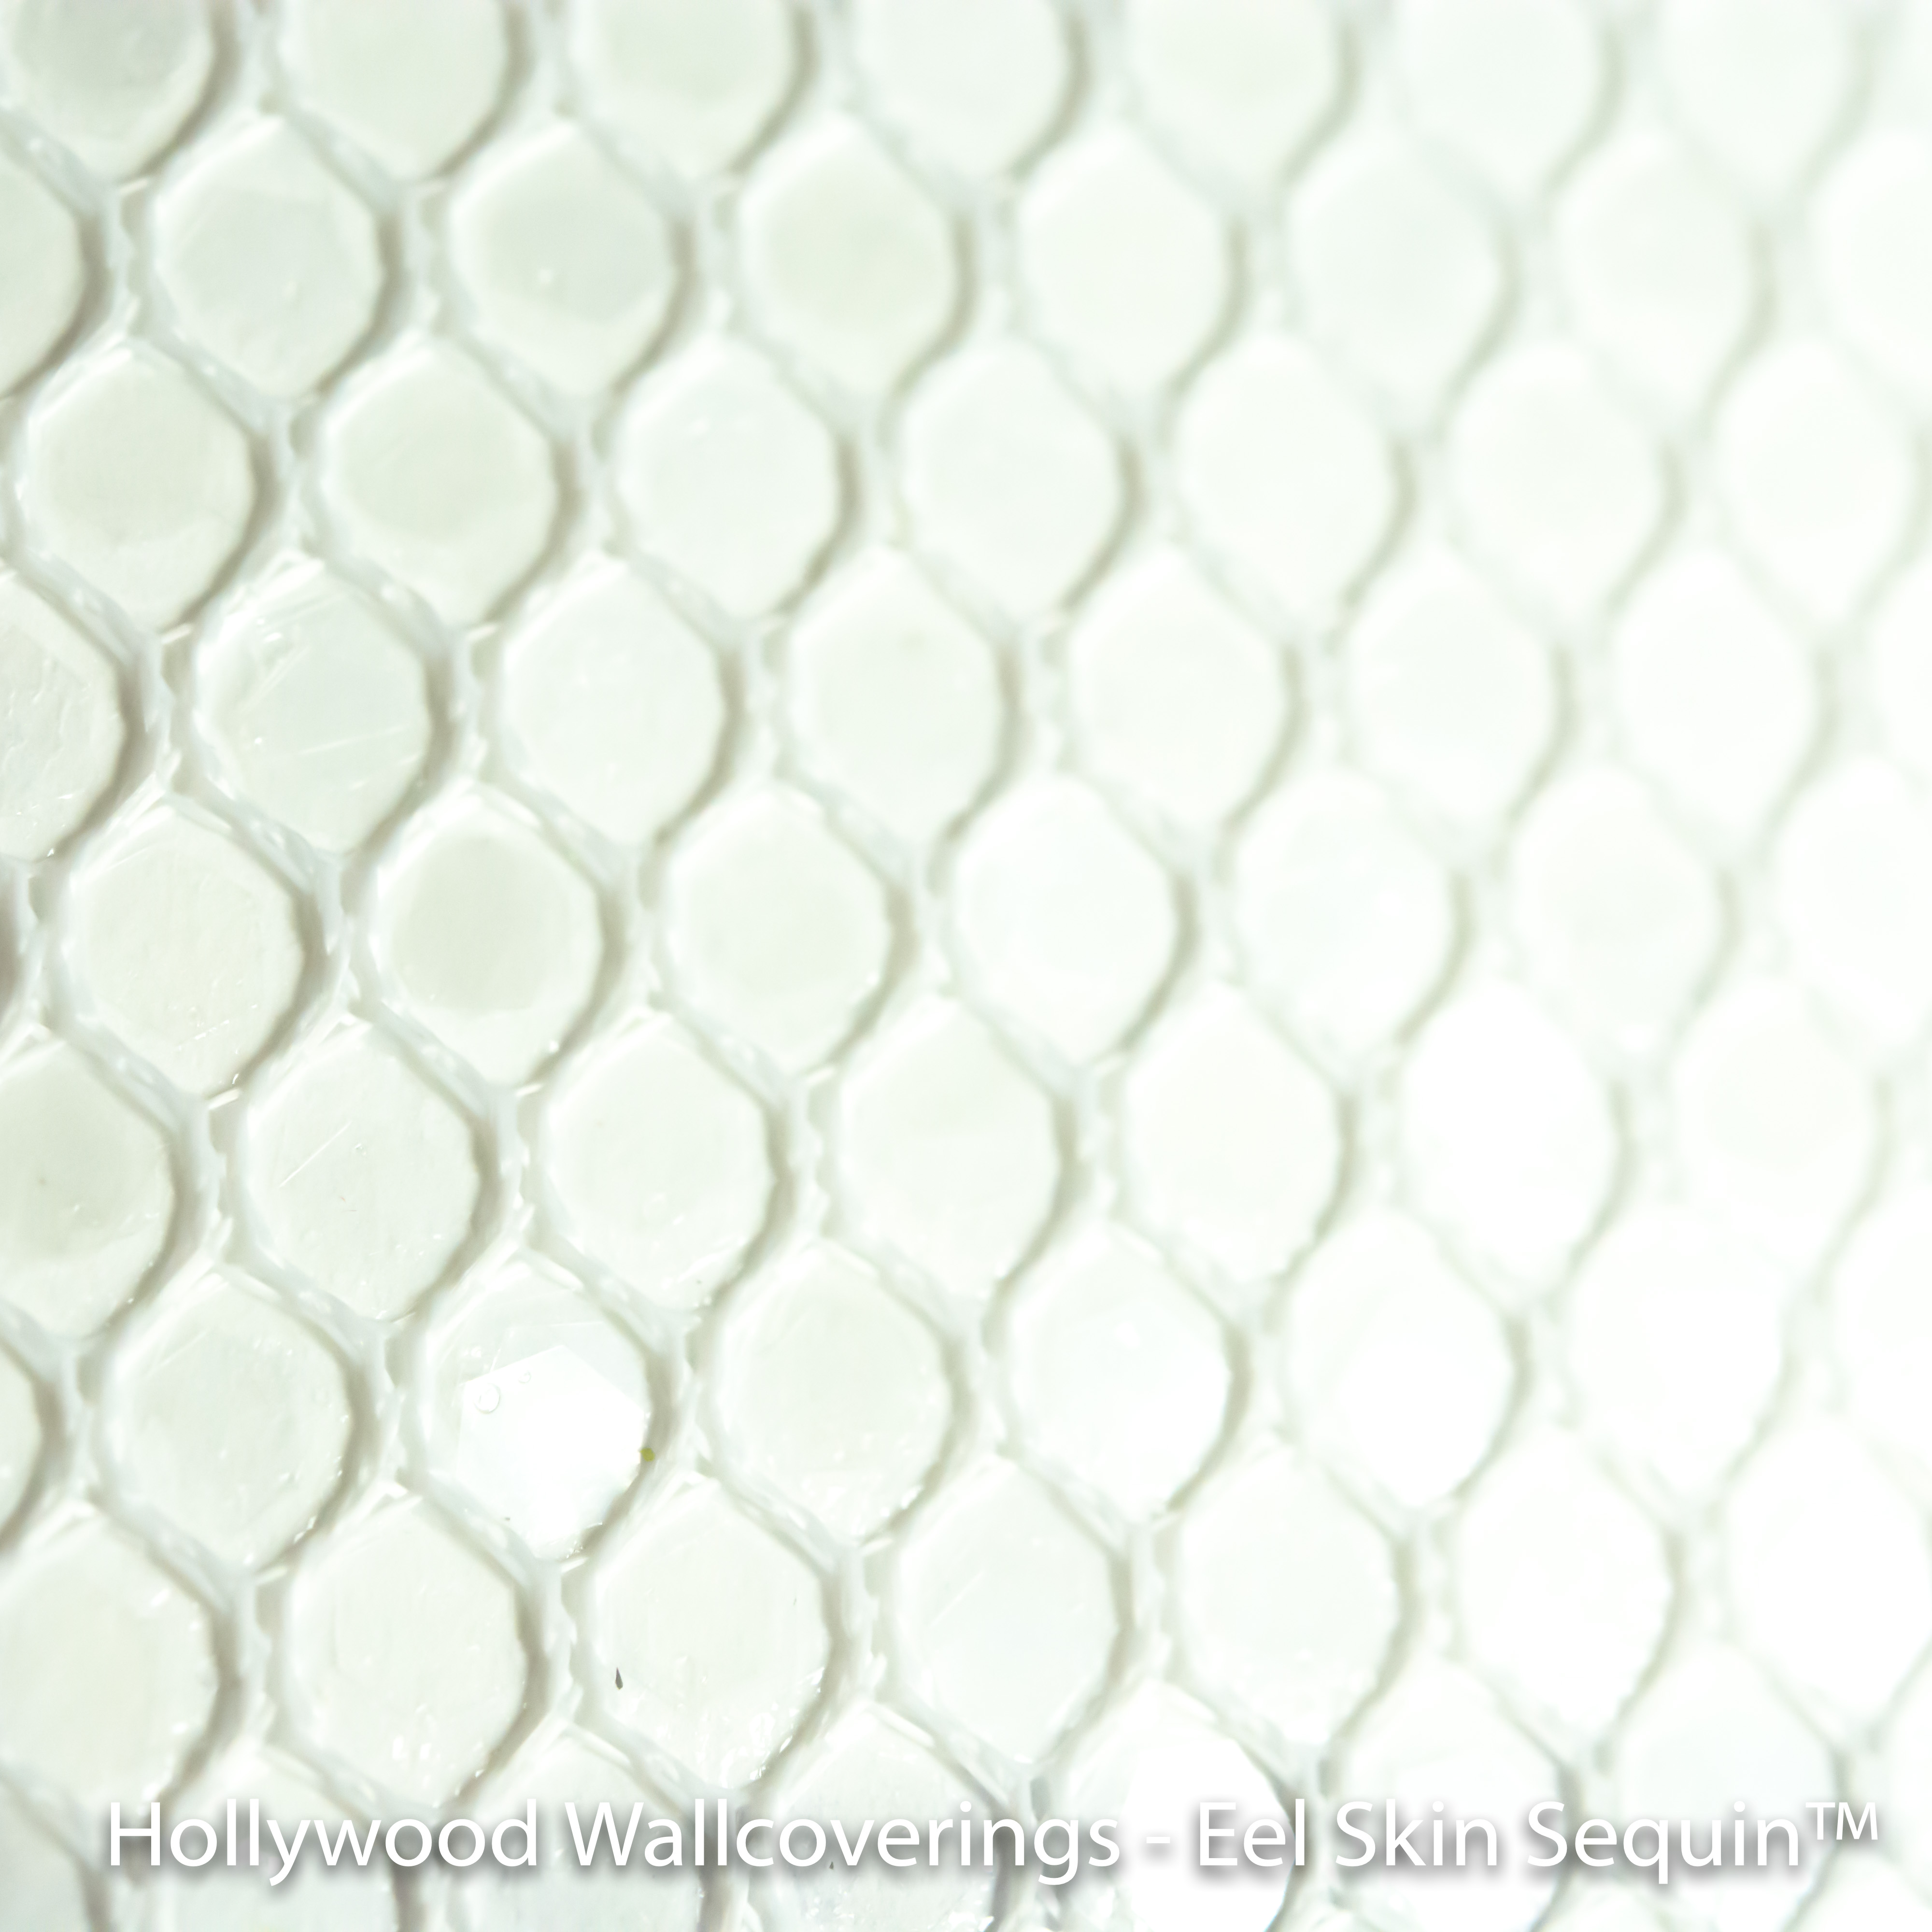 Eel-Skin-Sequin-GLM-Home-Color-White-Lightning-DesignerWallcoverings-com-Luxury-Wall-wallpaper-wp4605607